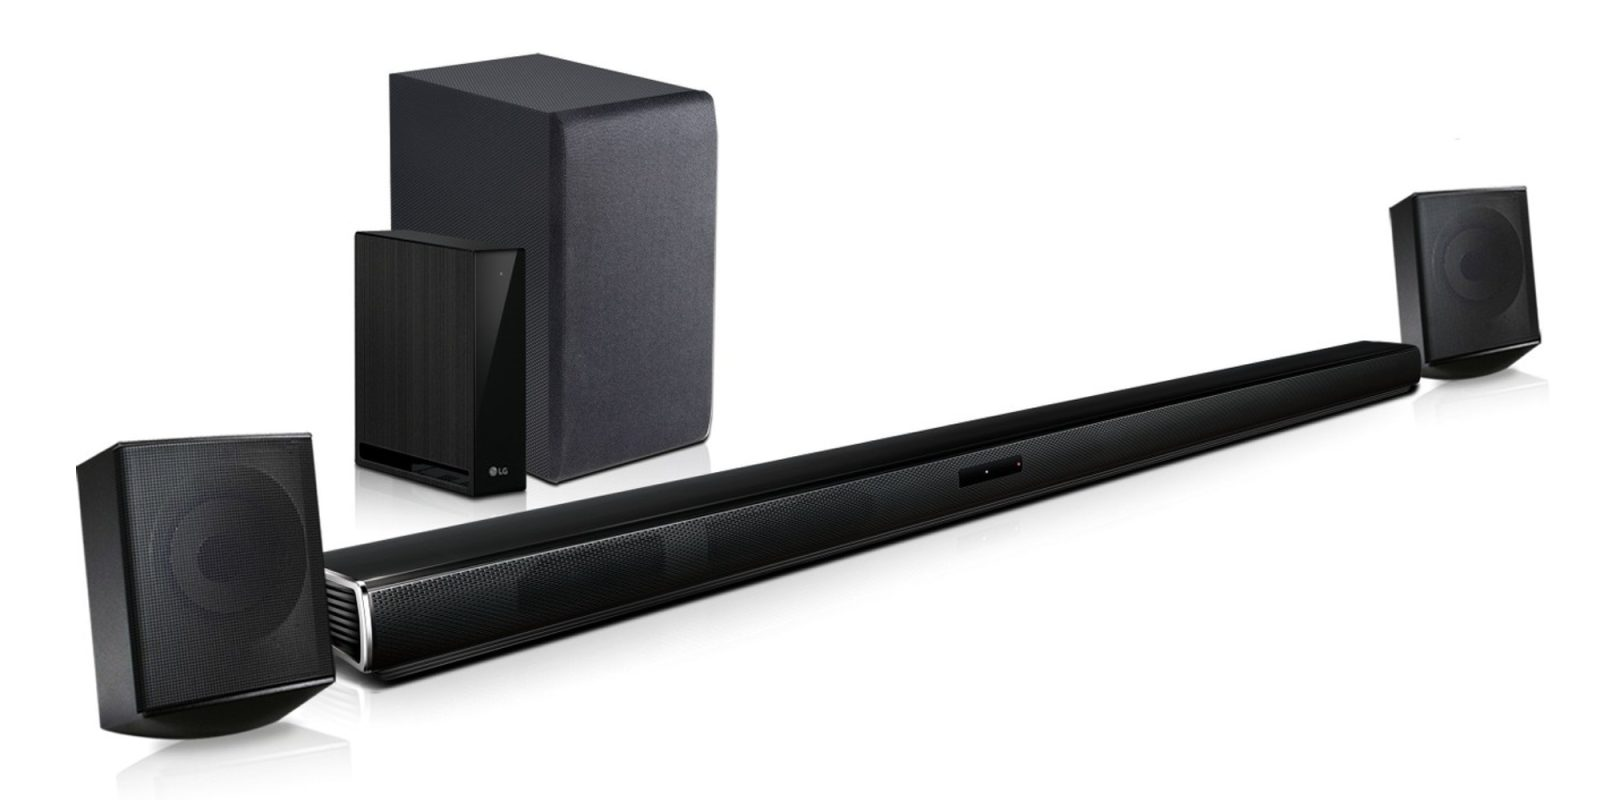 LG 4 1-Ch  Bluetooth Soundbar System amplifies your home